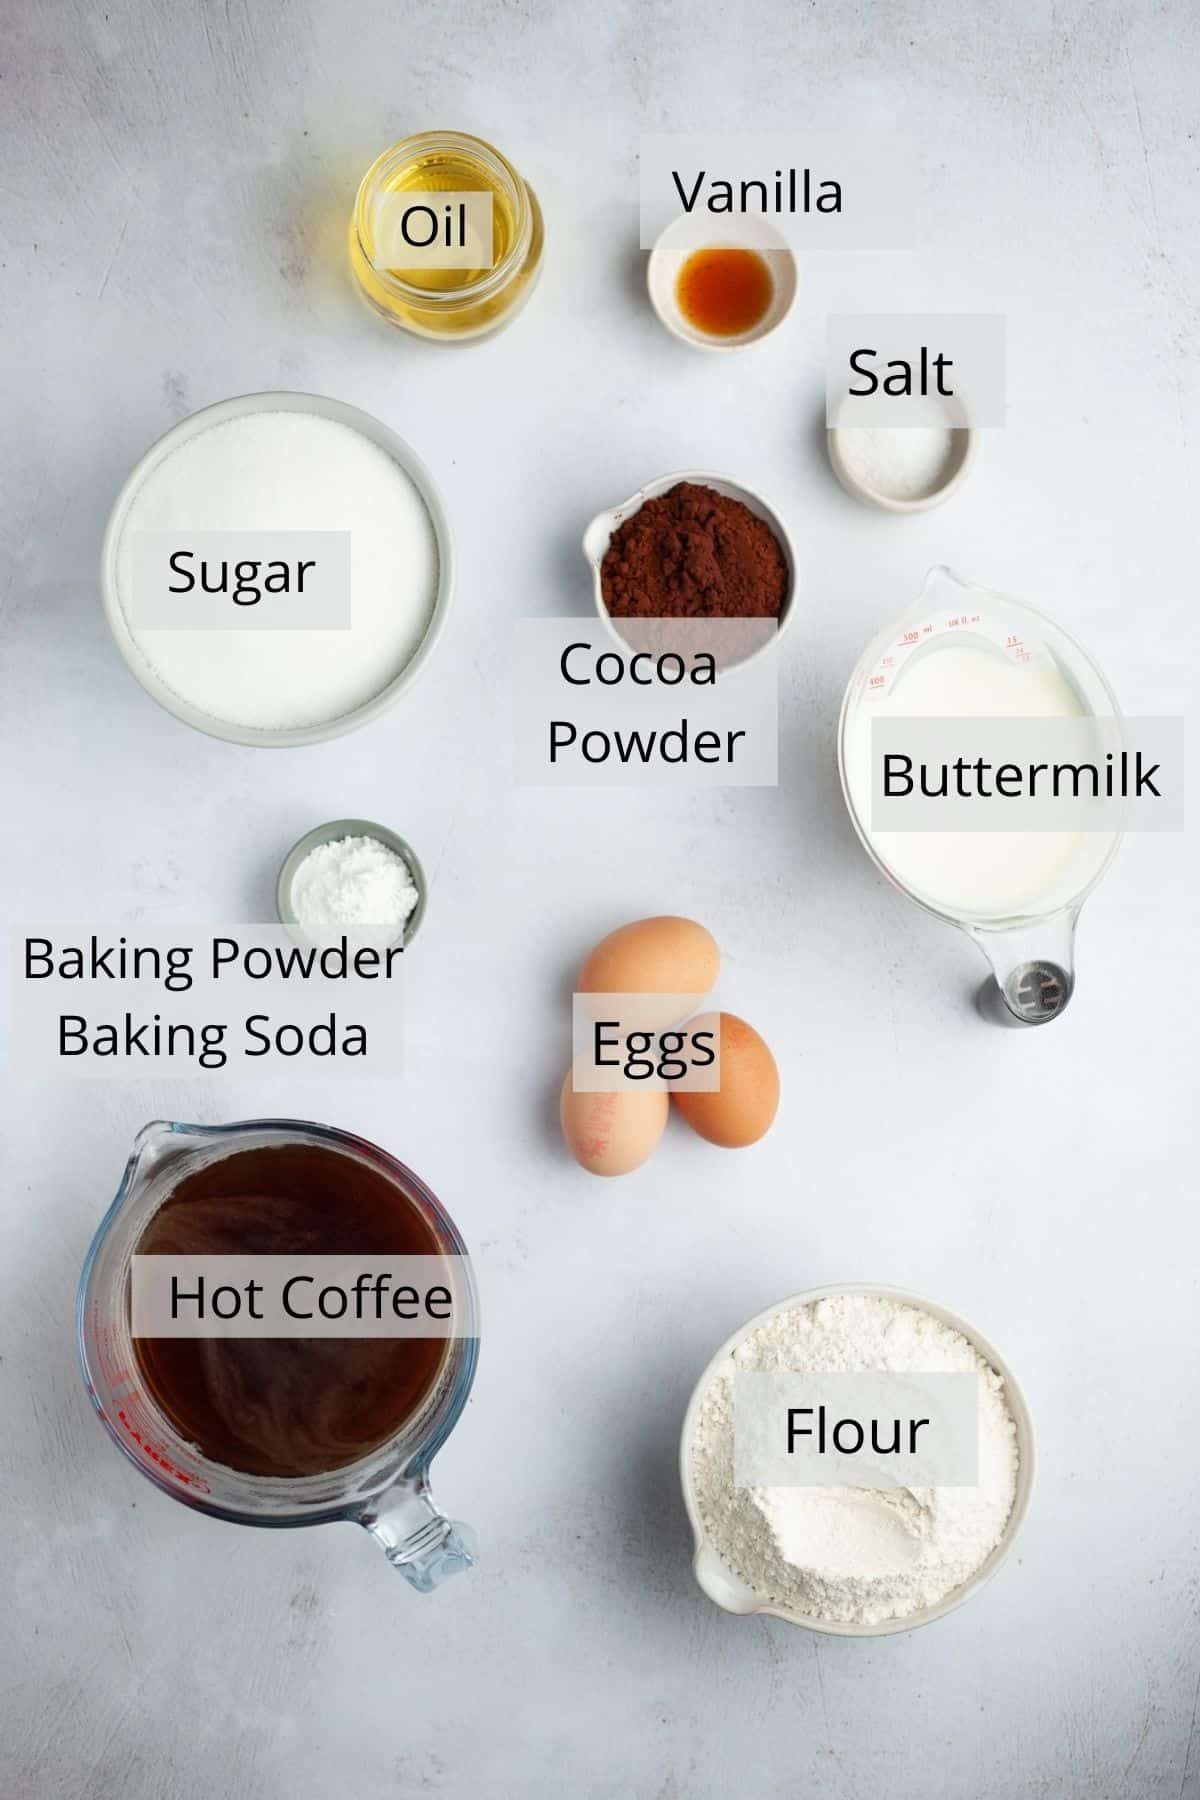 Ingredients needed for a chocolate cake